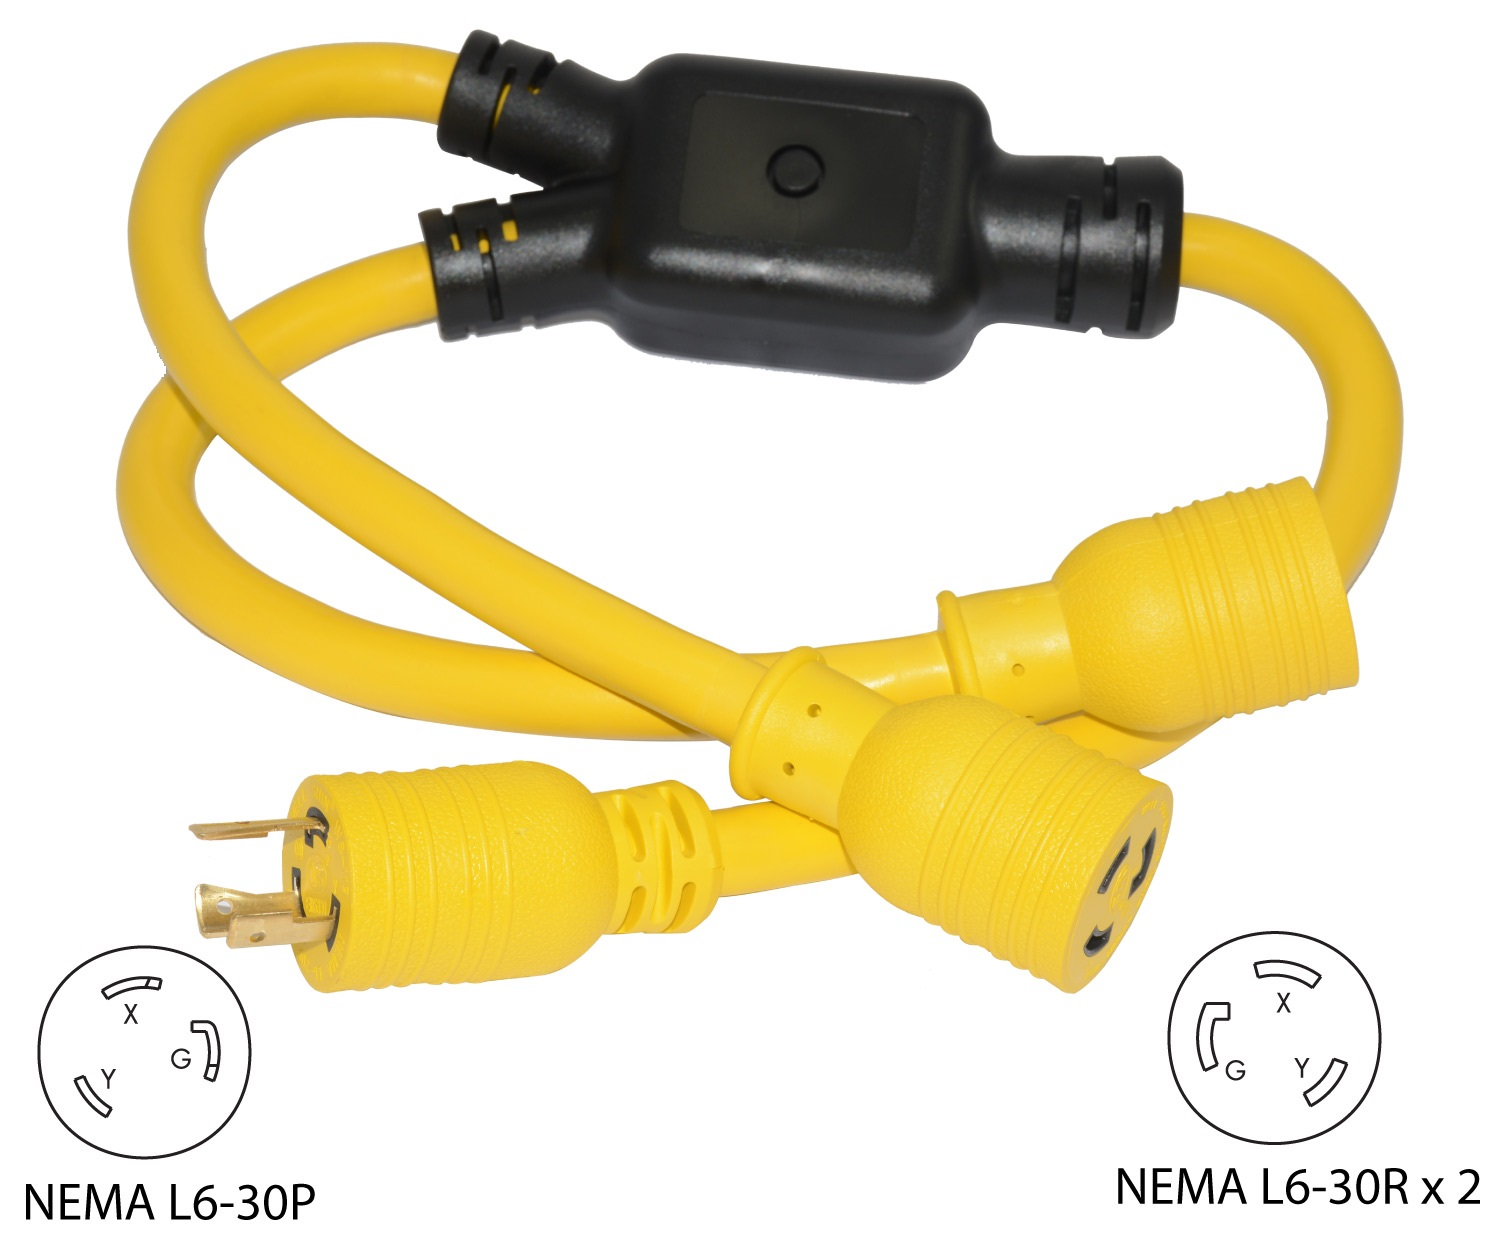 Conntek Yl630l630 Nema L6 30p To 2 L6 30r Y Adapter Splitter